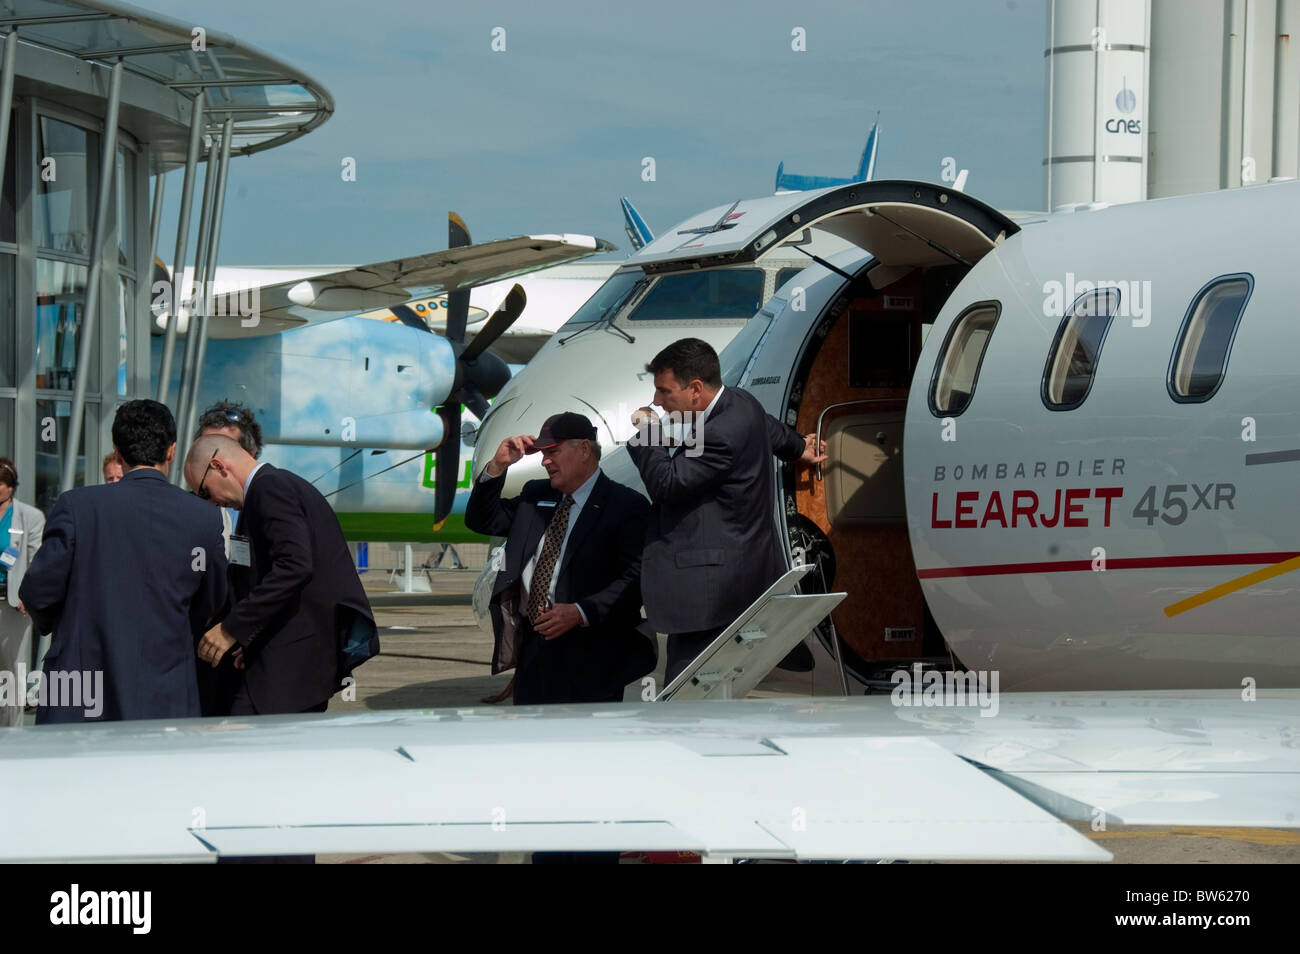 Paris, Fra-nce, Public Events, Businessmen at Paris Air Show at the Bourget Airport, Looking at Bombardier Learjet - Stock Image